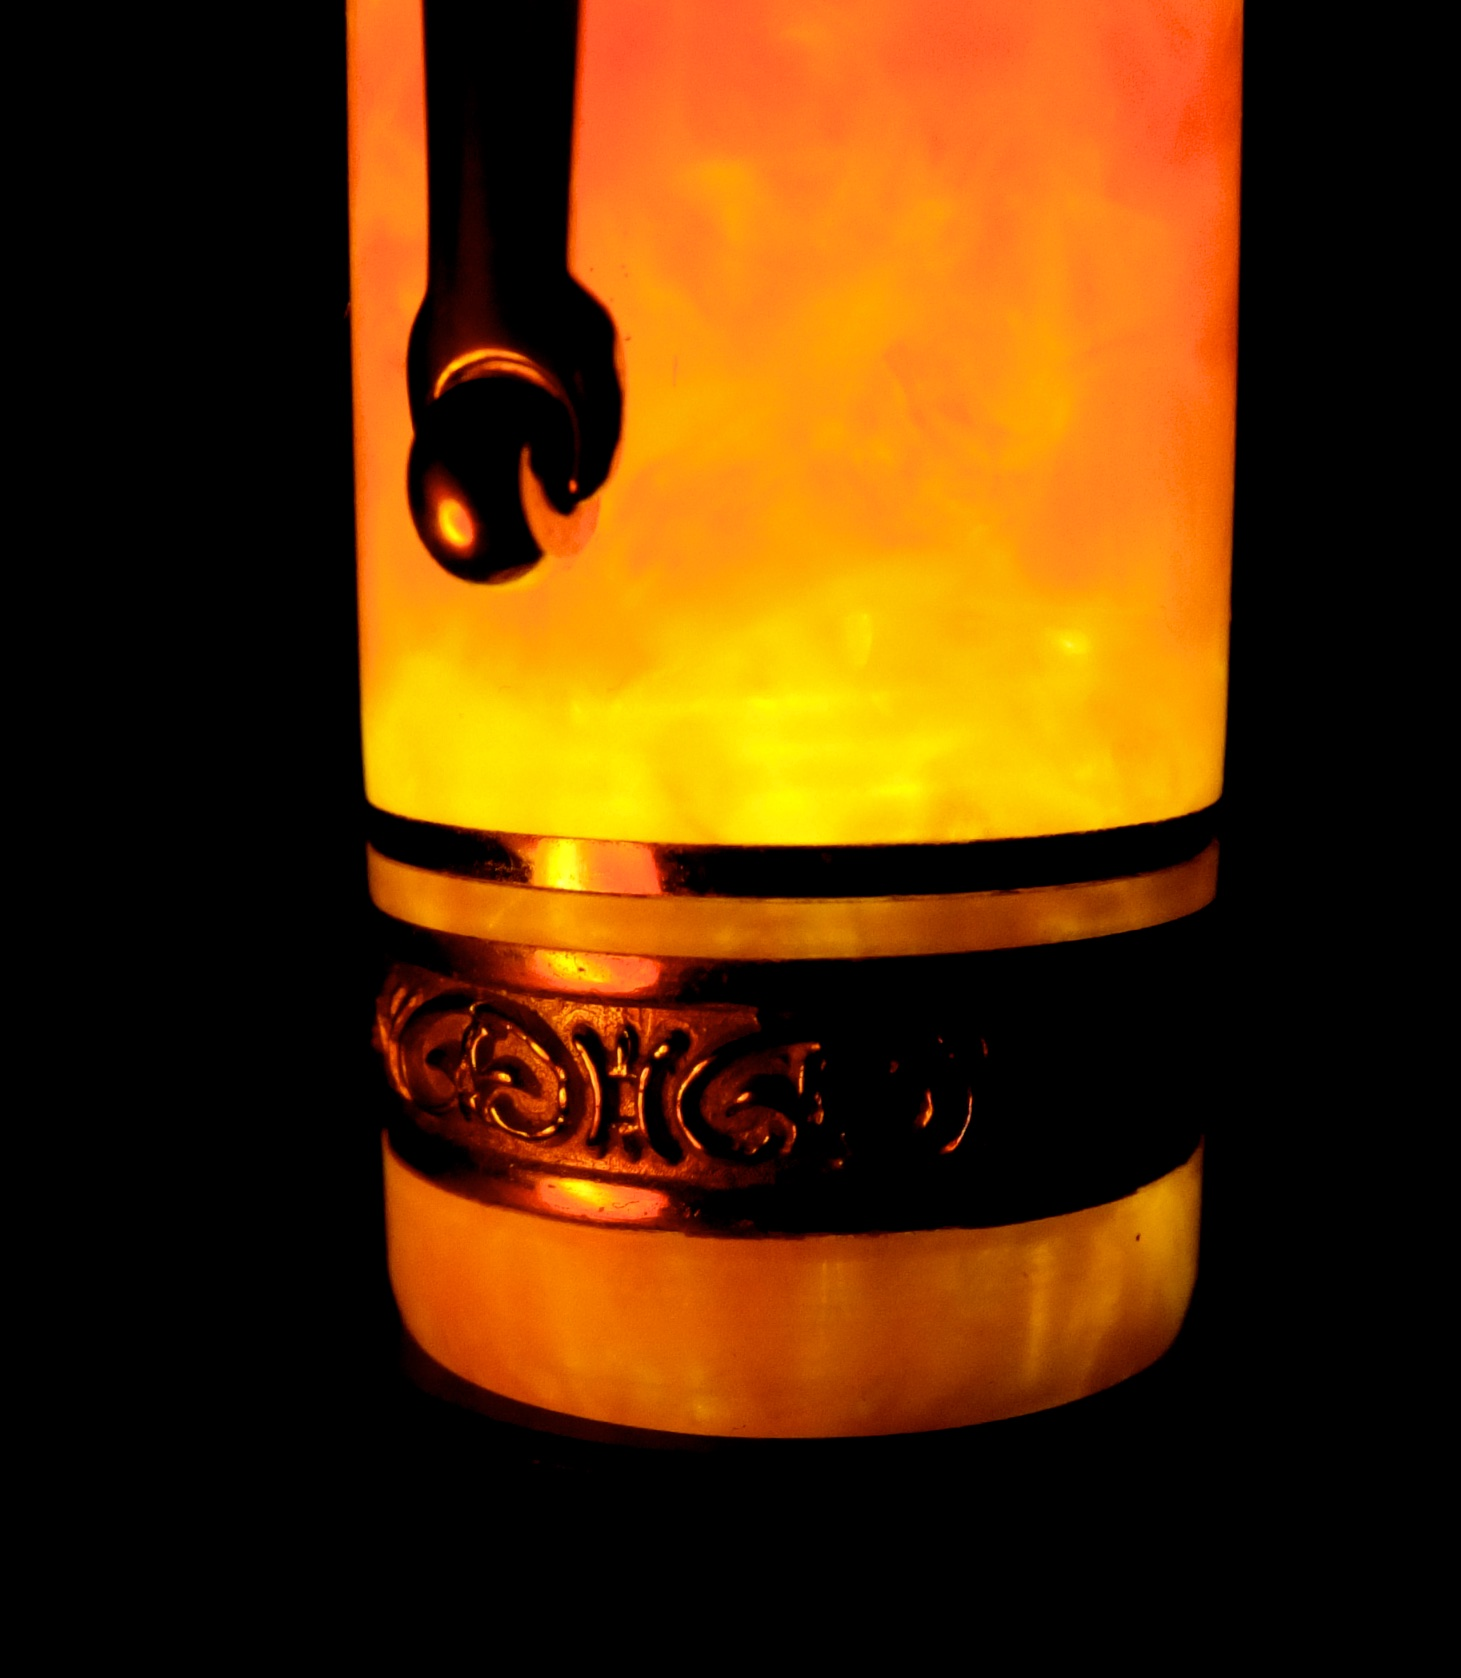 The orange celluloid of a Delta Dolce Vita fountain pen cap glows with an internal fire.  Canon G10 at 7mm f/8 1/60 ISO 800 iPhone light shining through the end cap.